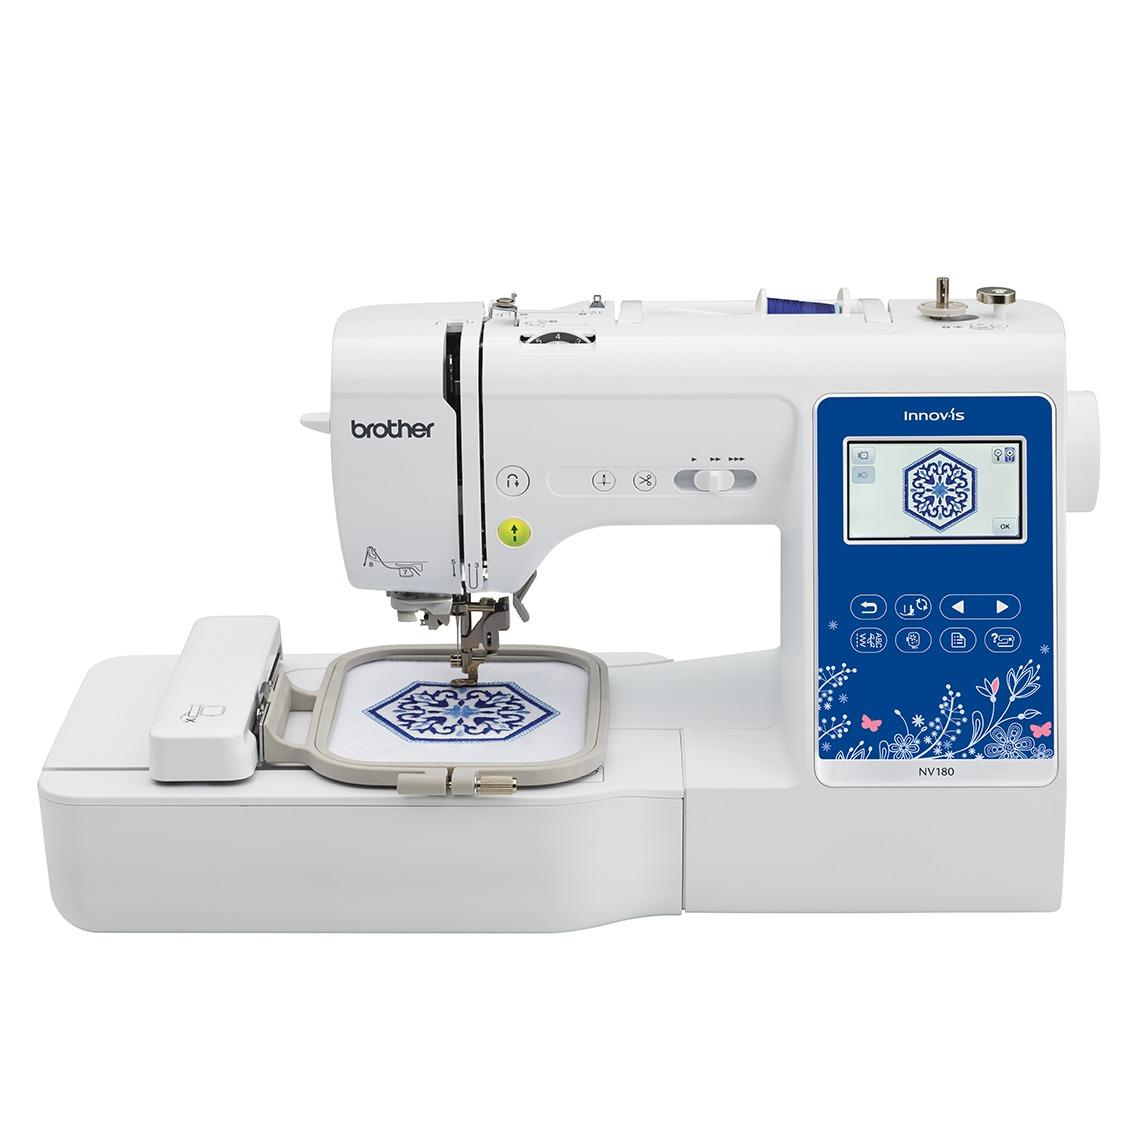 BROTHER SEWING & EMBROIDERY MACHINE NV180